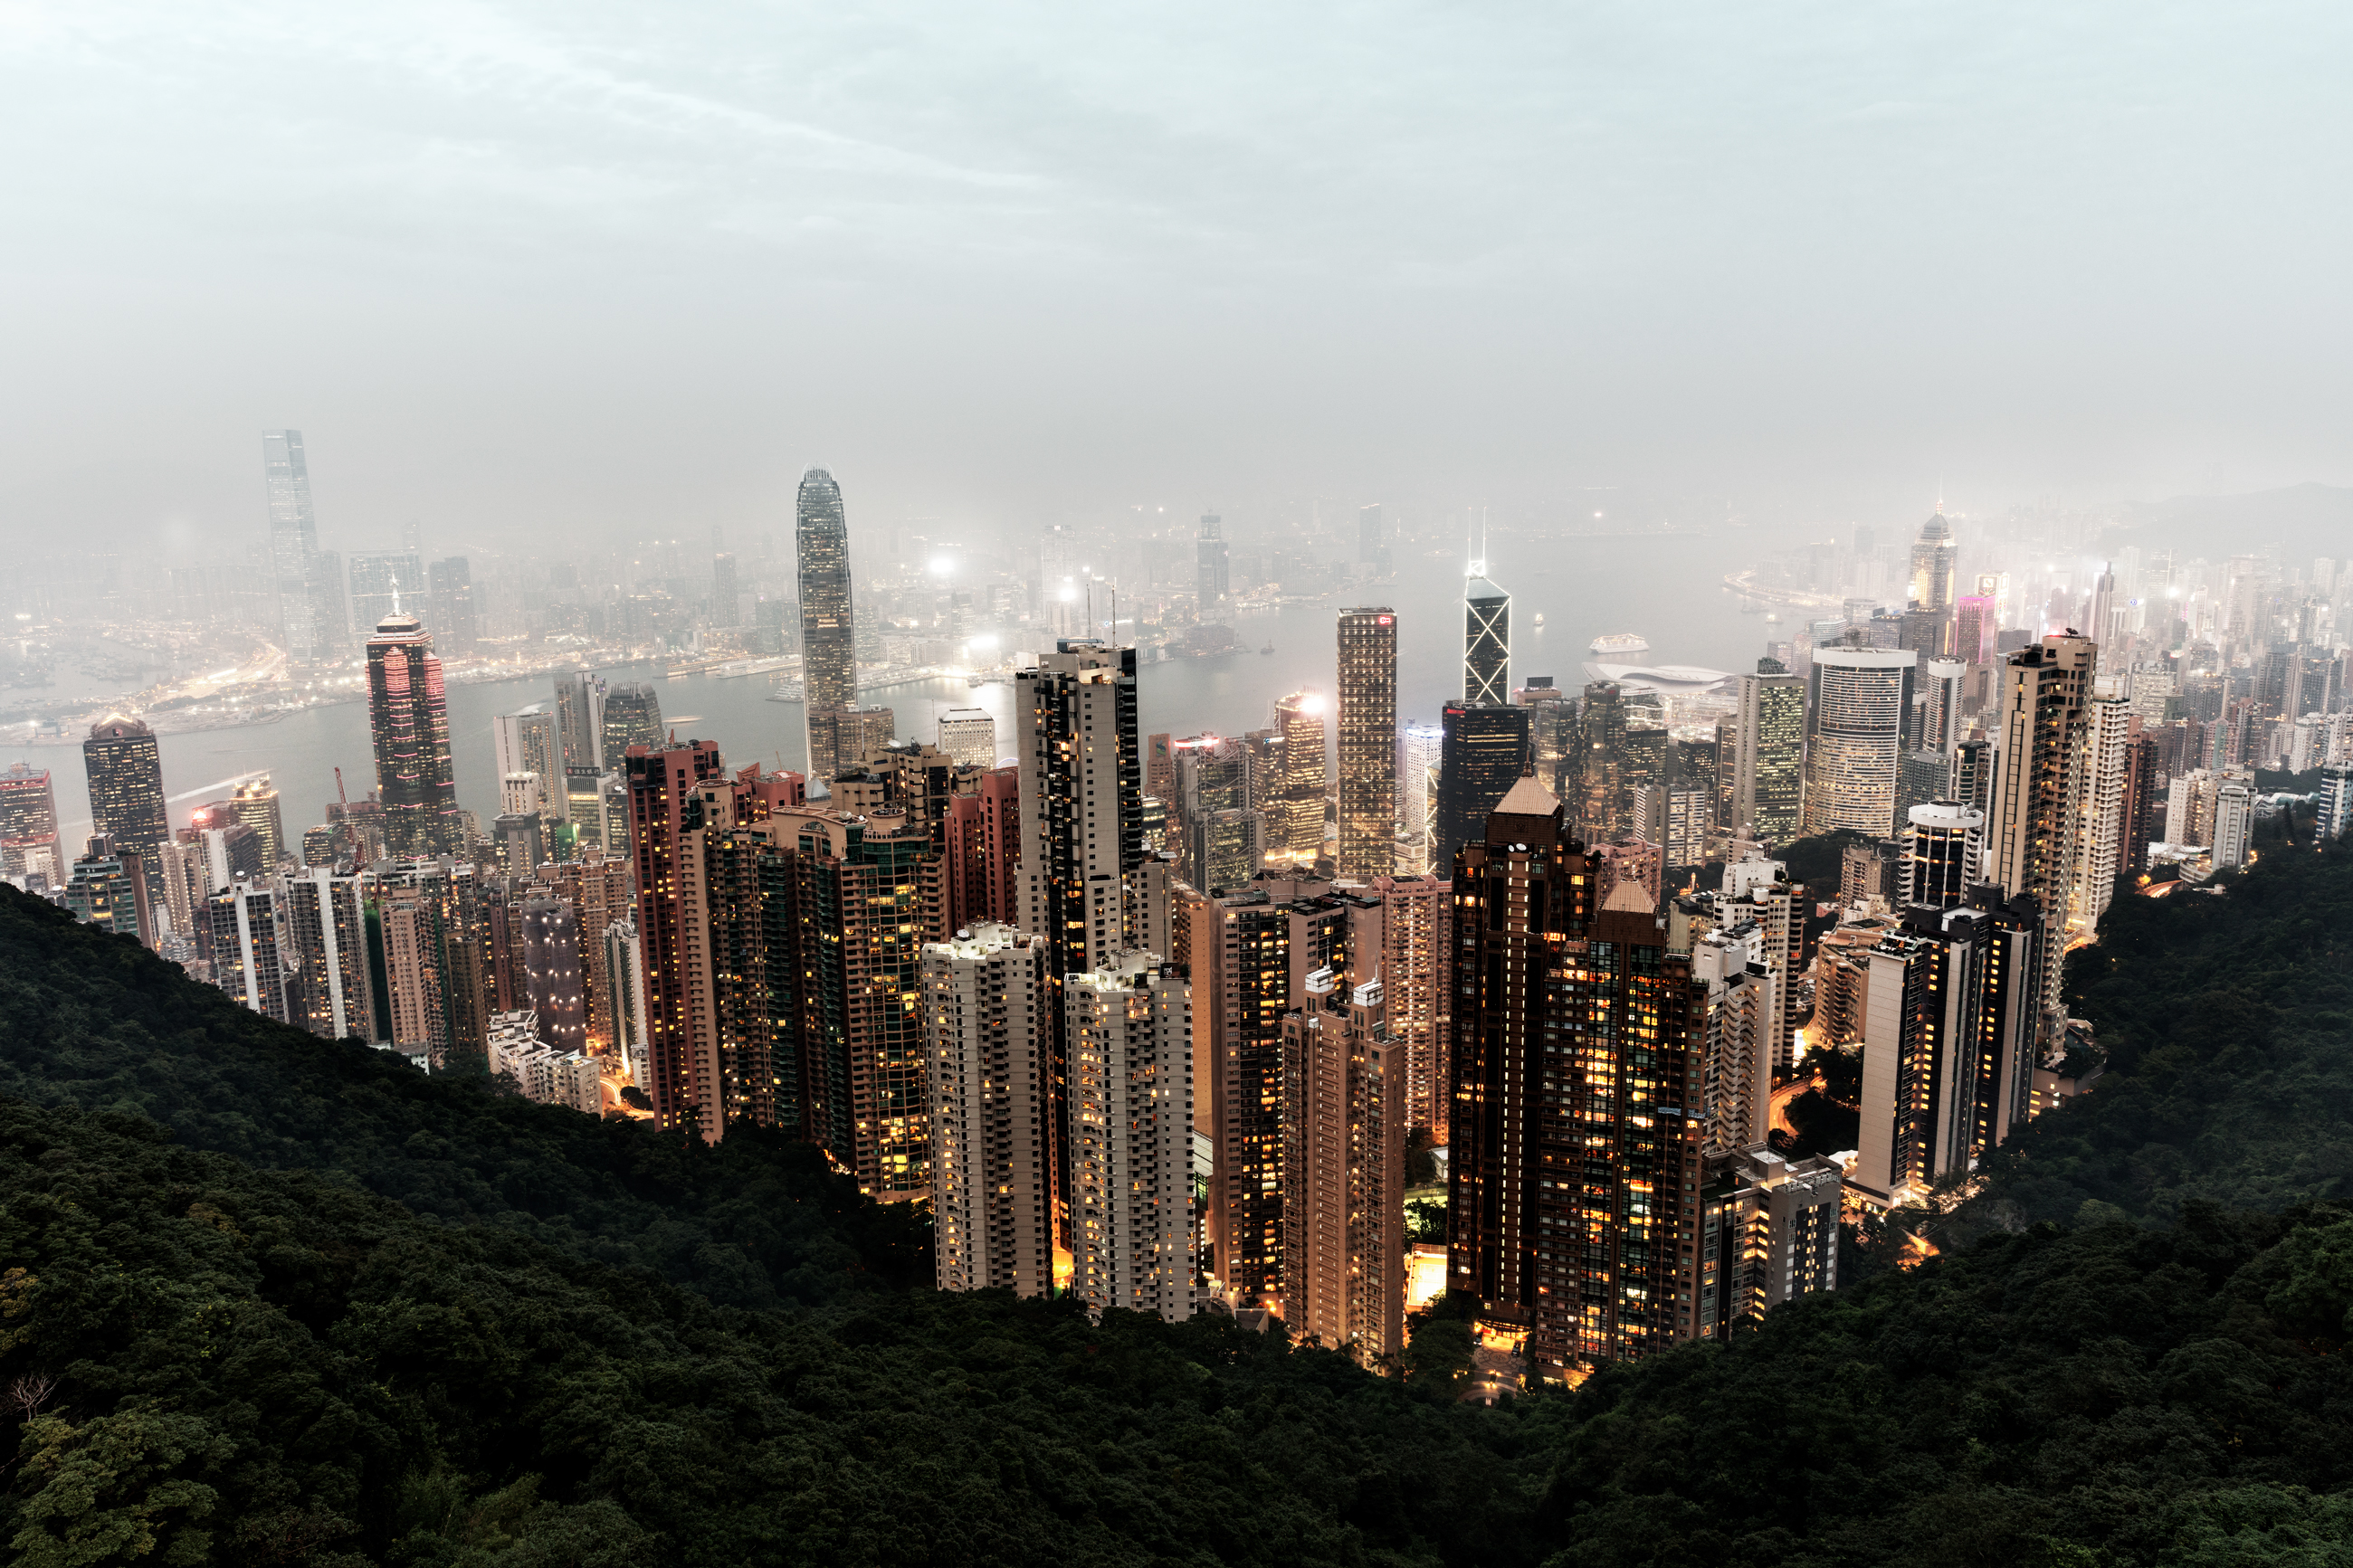 Digital Photography of Hong Kong by Ludwig Favre